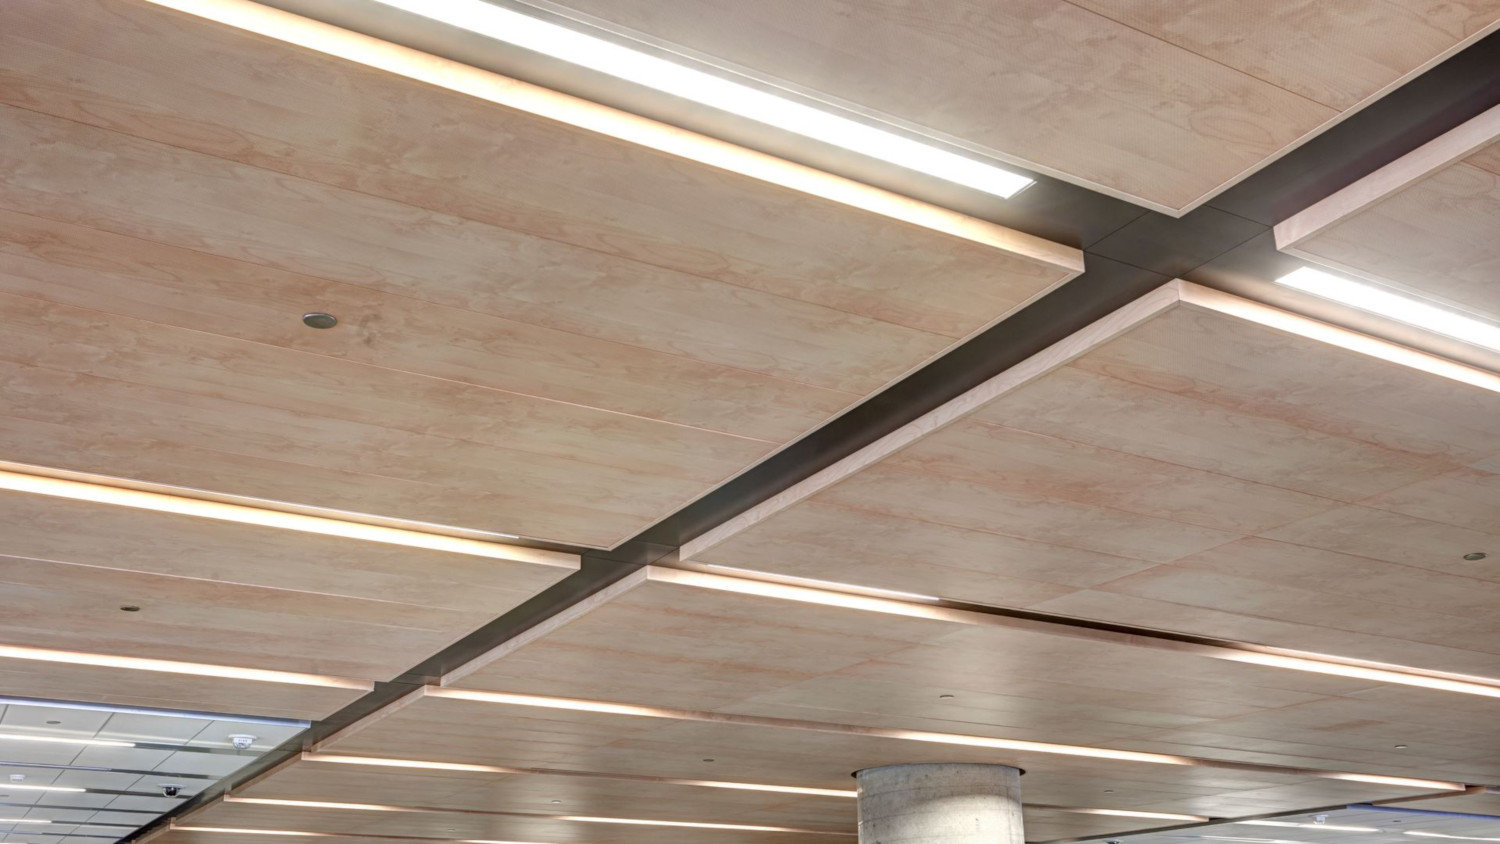 Plank Hook-on Metal Panel Ceiling System